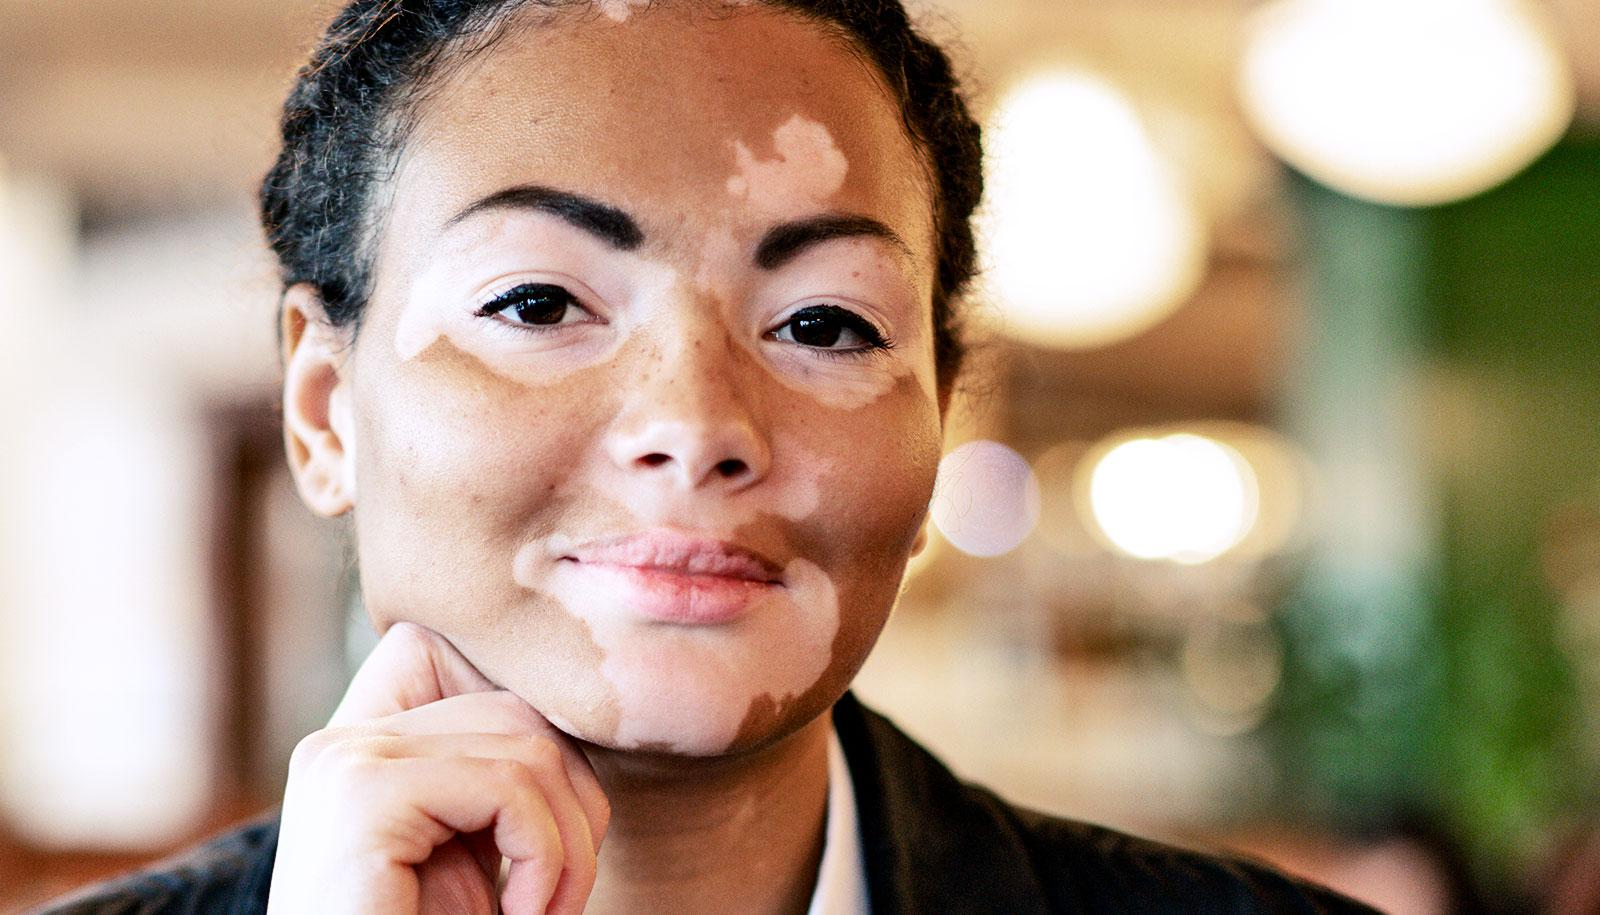 A woman with Vitiligo sits in a cafe with her hand on her chin